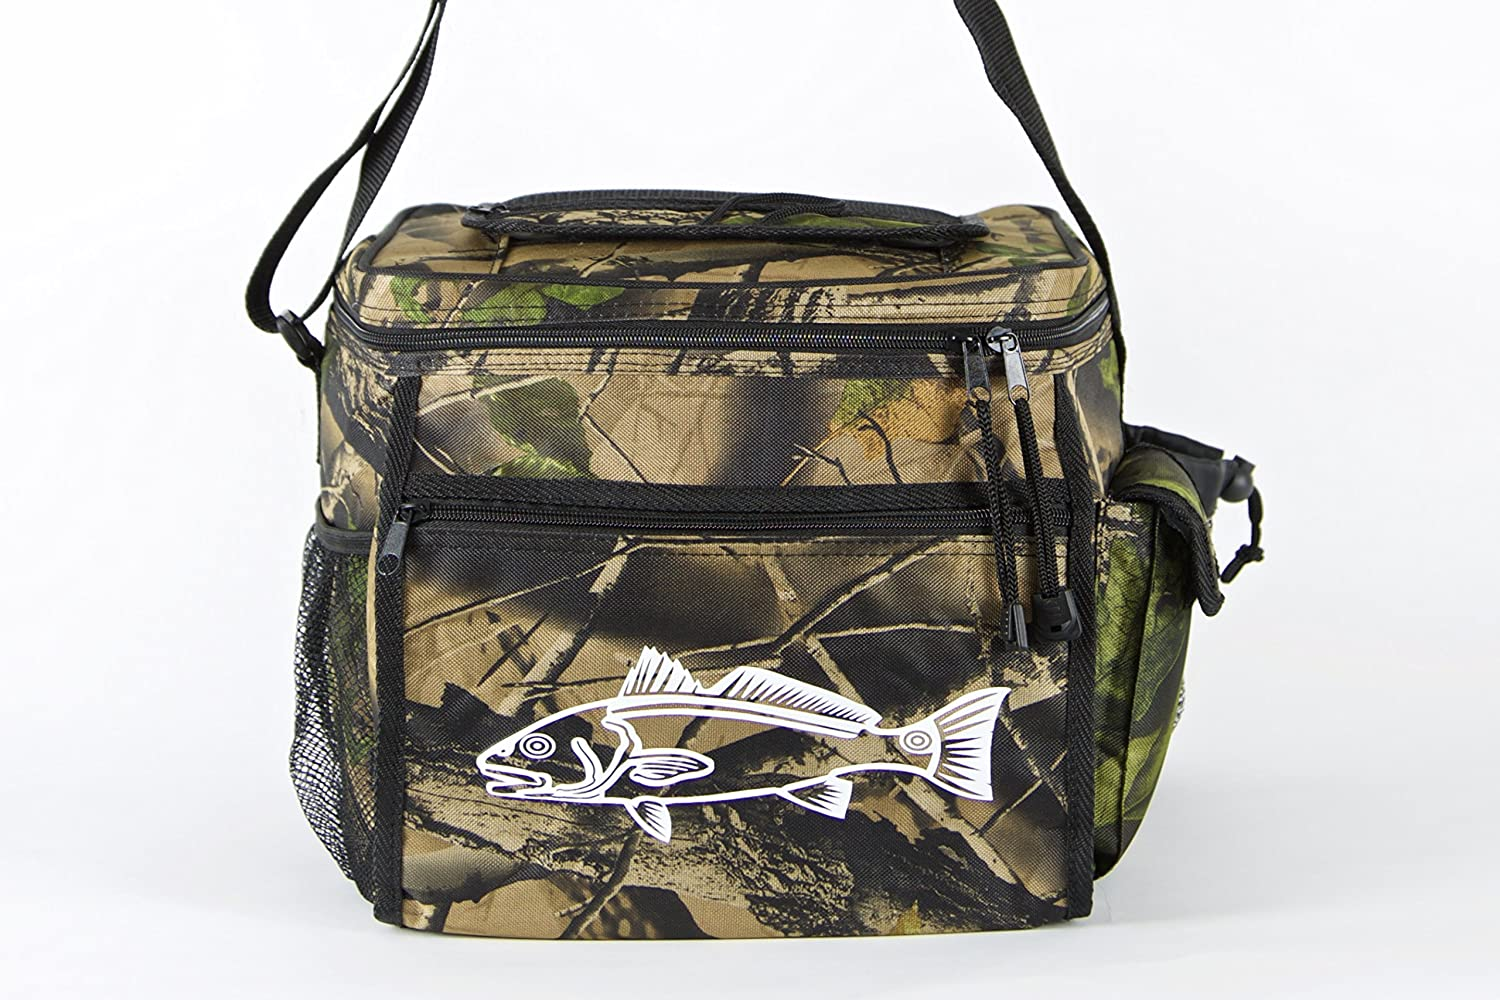 e34914870 Swell Avenue Camo Cooler for Fishing, Camping or Hunting - Redfish Logo  Durable Can Cooler with 24 Can Capacity and Heat Sealed Interior - Perfect  Camo ...